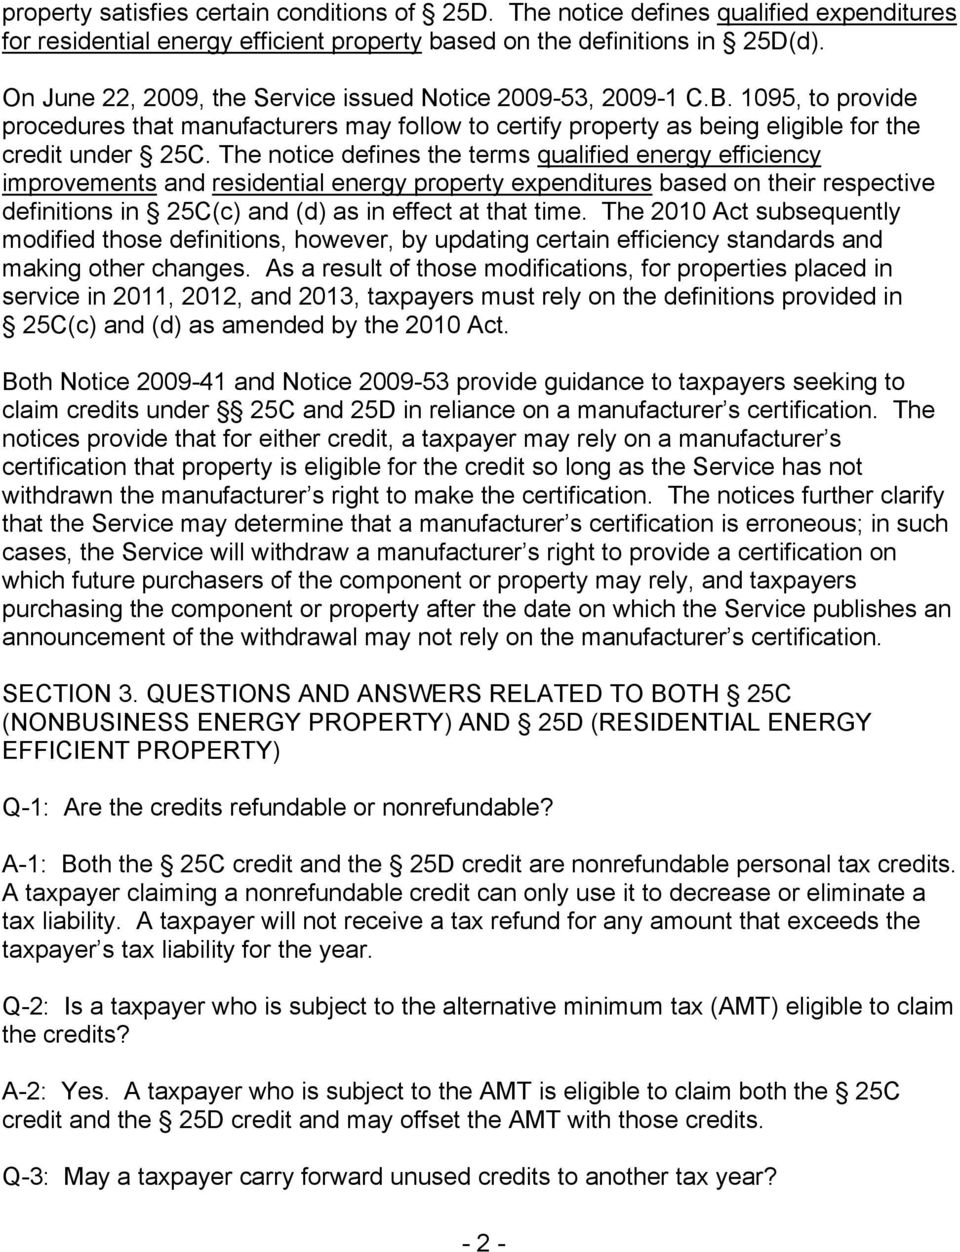 The notice defines the terms qualified energy efficiency improvements and residential energy property expenditures based on their respective definitions in 25C(c) and (d) as in effect at that time.